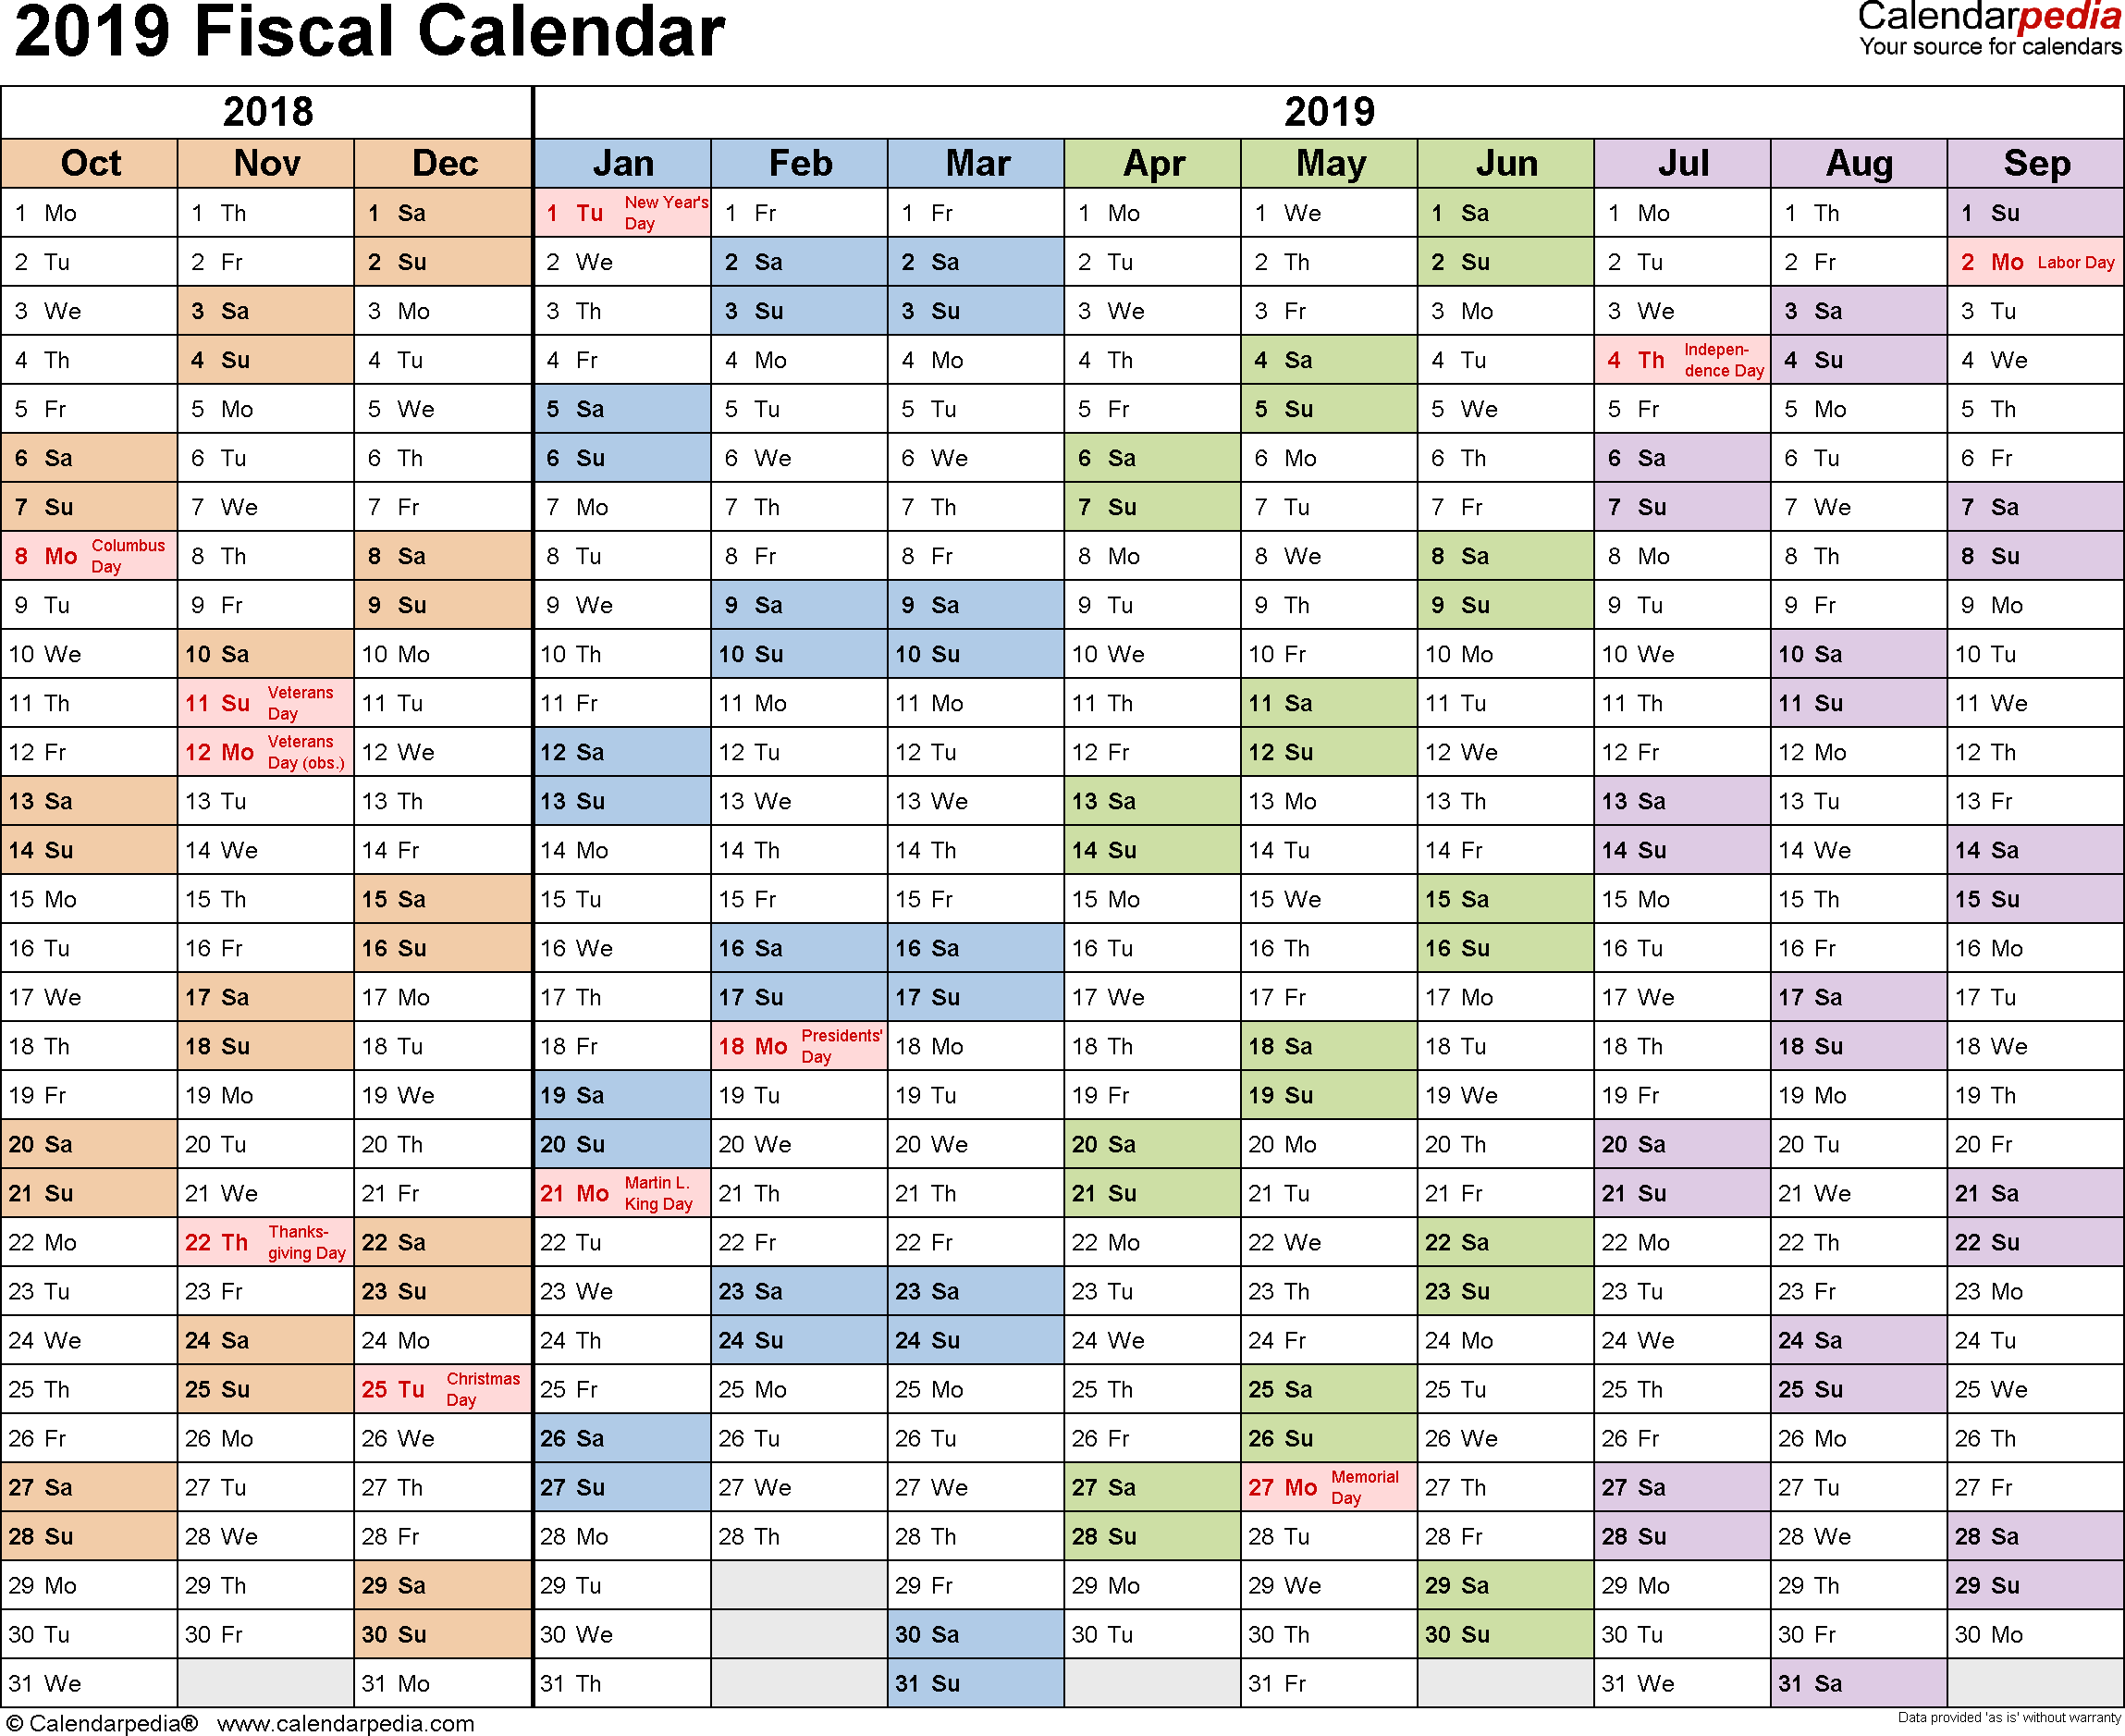 Day Of Year Calendar 2019 With Fiscal Calendars As Free Printable Word Templates